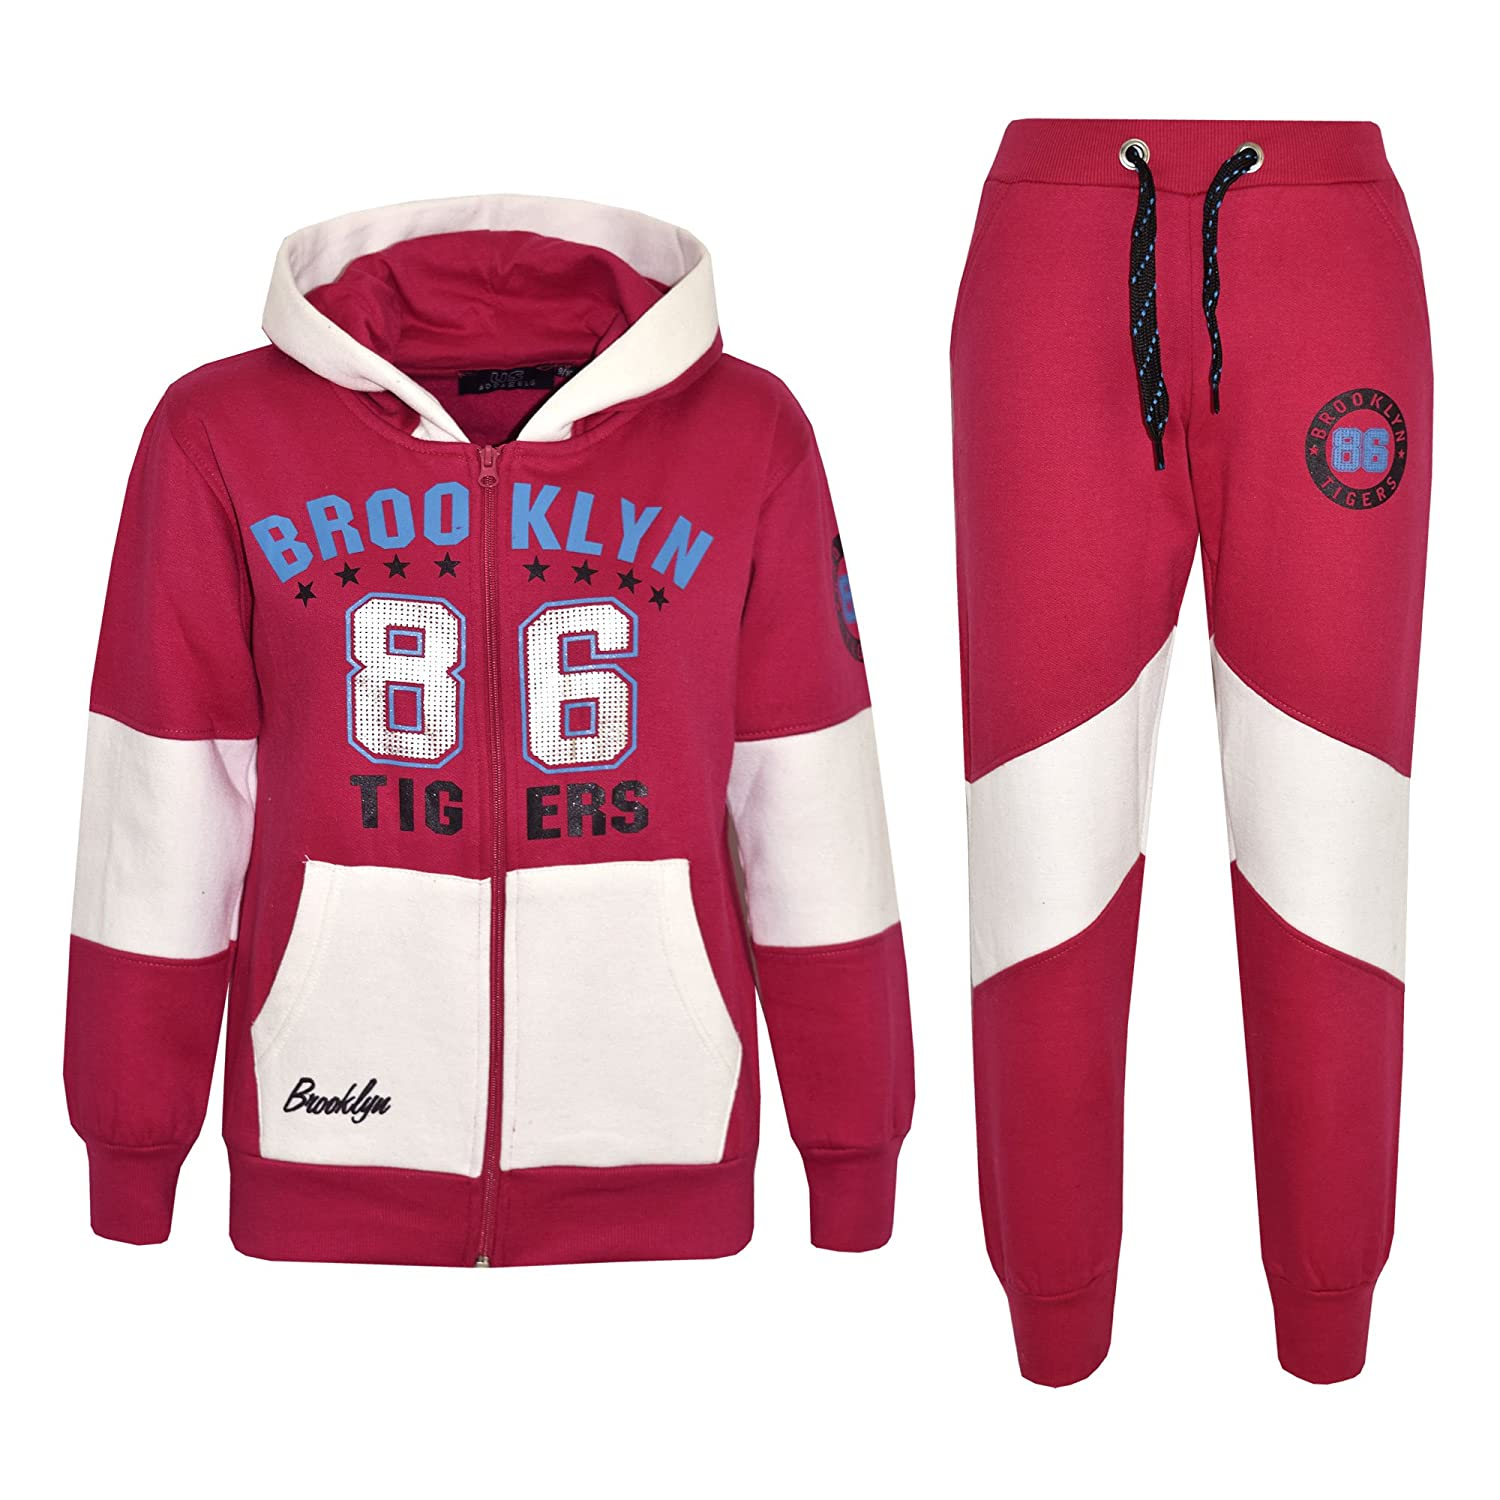 A2Z 4 Kids® Kids Girls Tracksuit Brooklyn 86 Tigers Print Hoodie & Bottom Jog Suit New Age 7 8 9 10 11 12 13 Years